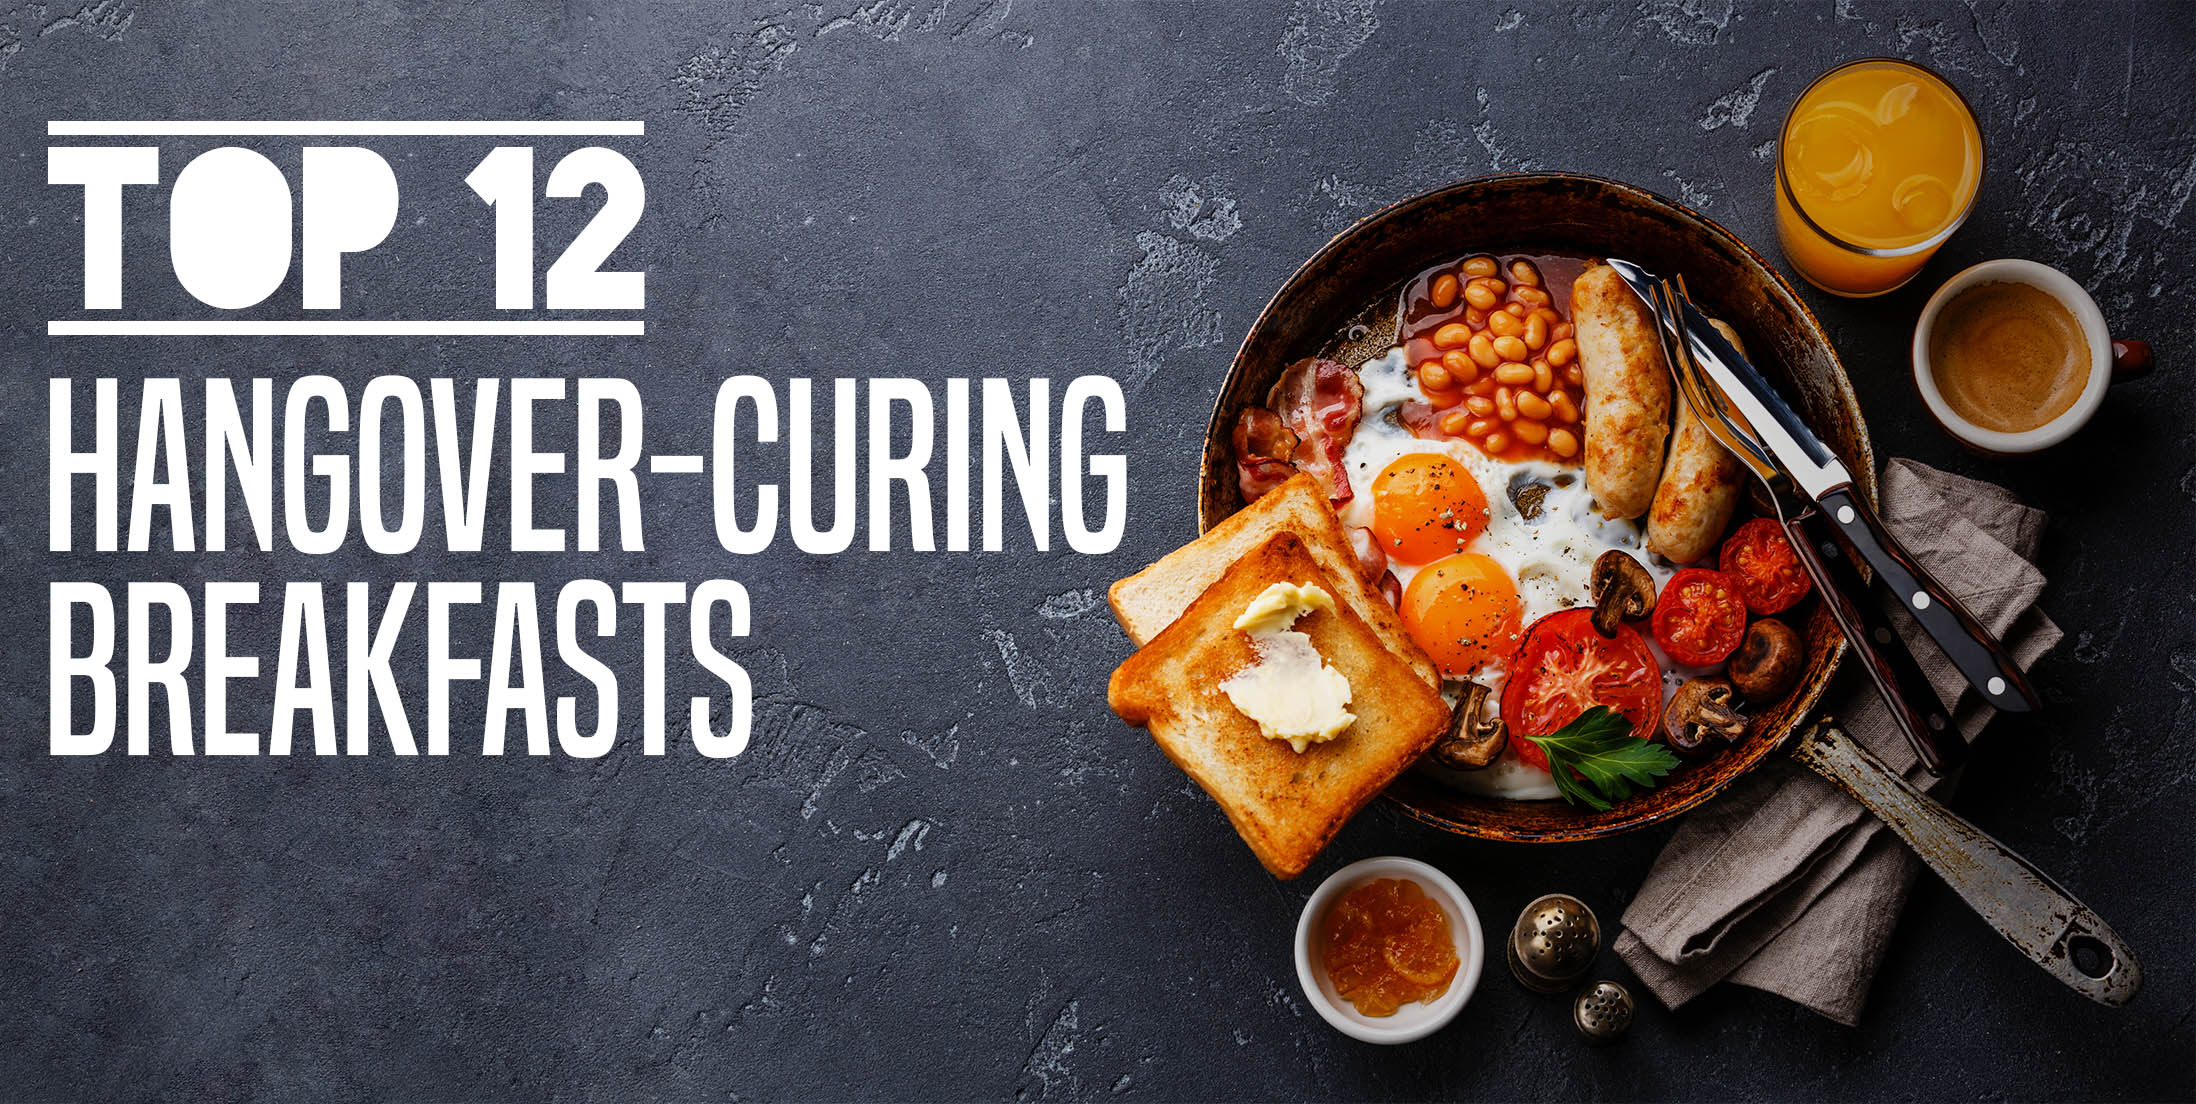 Top 12 Hangover Curing Breakfasts